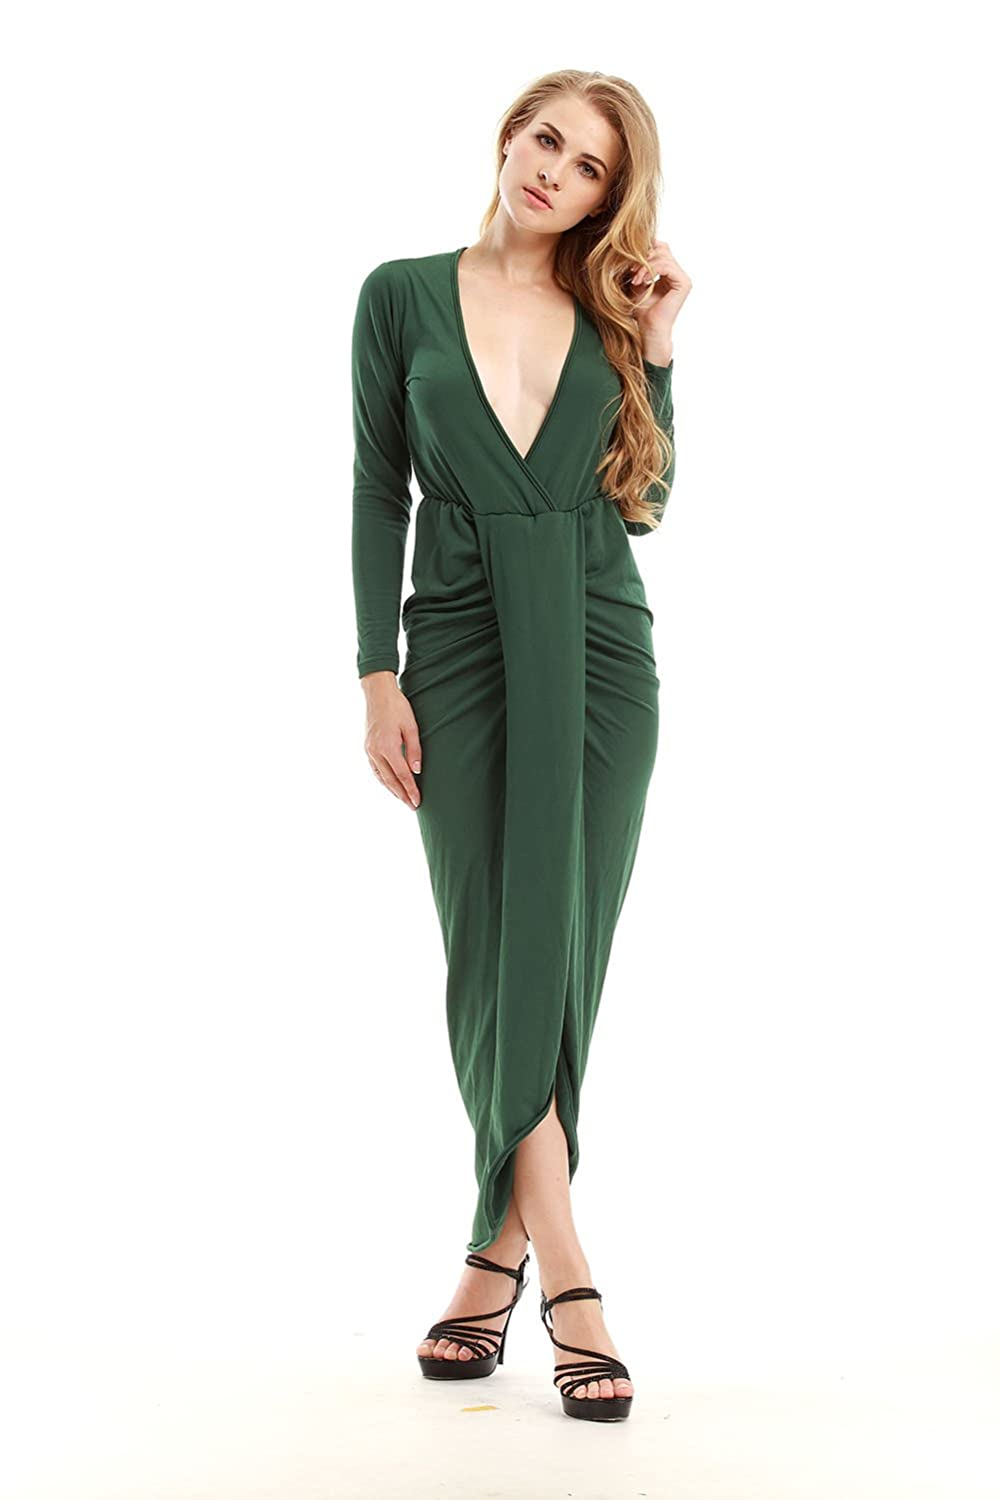 TeeDoc Women Plain Pleated V-neck Slit Front Long Sleeve Wrap Cocktail Dresses